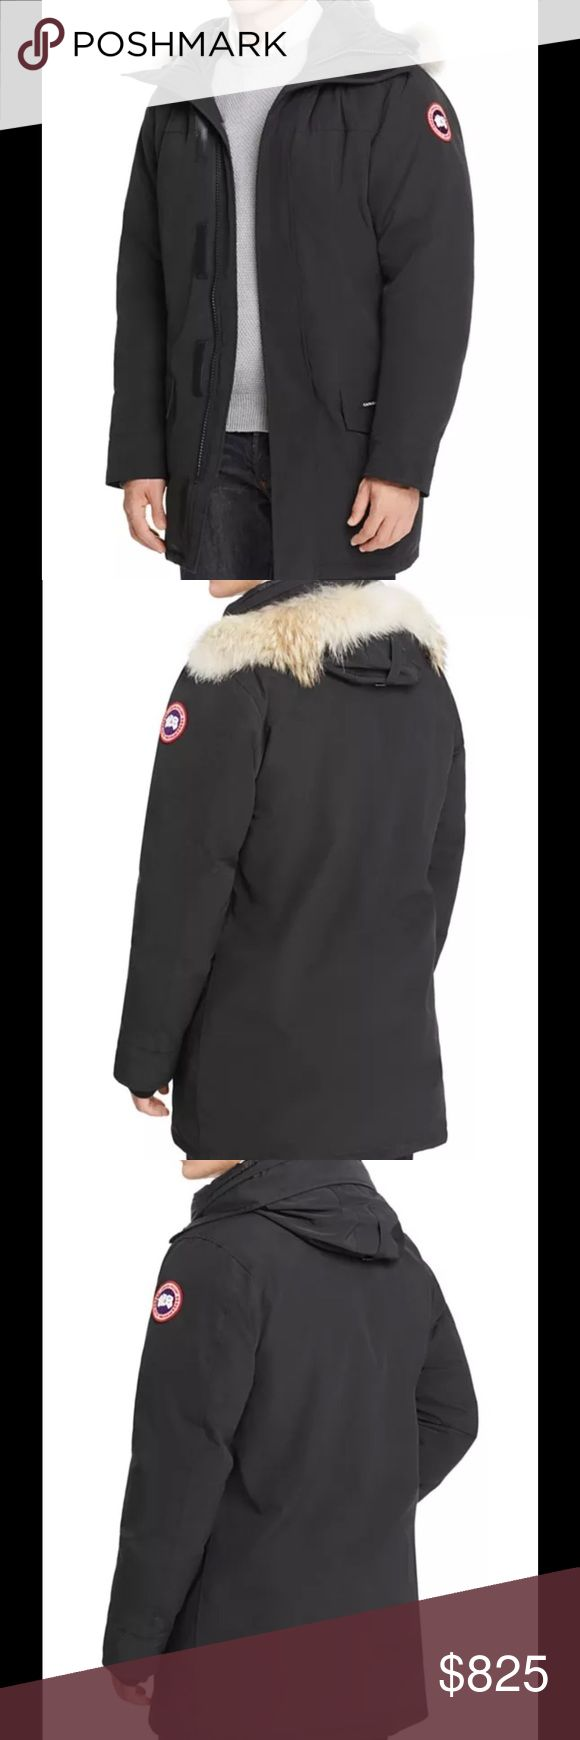 Canada Goose Langford Parka with Fur Hood Designed with an athletic cut for a trim fit Detachable fur trim on collar Zip and VELCRO® brand closure Angled chest pockets, flap hand pockets Real coyote fur; natural; origin: Canada Slim fit: athletic cut, designed to fit closer to the body, maximizes mobility while maintaining core warmth Polyester/cotton; lining: nylon; fill: white duck down; hood trim: fur Canada Goose Jackets & Coats Puffers